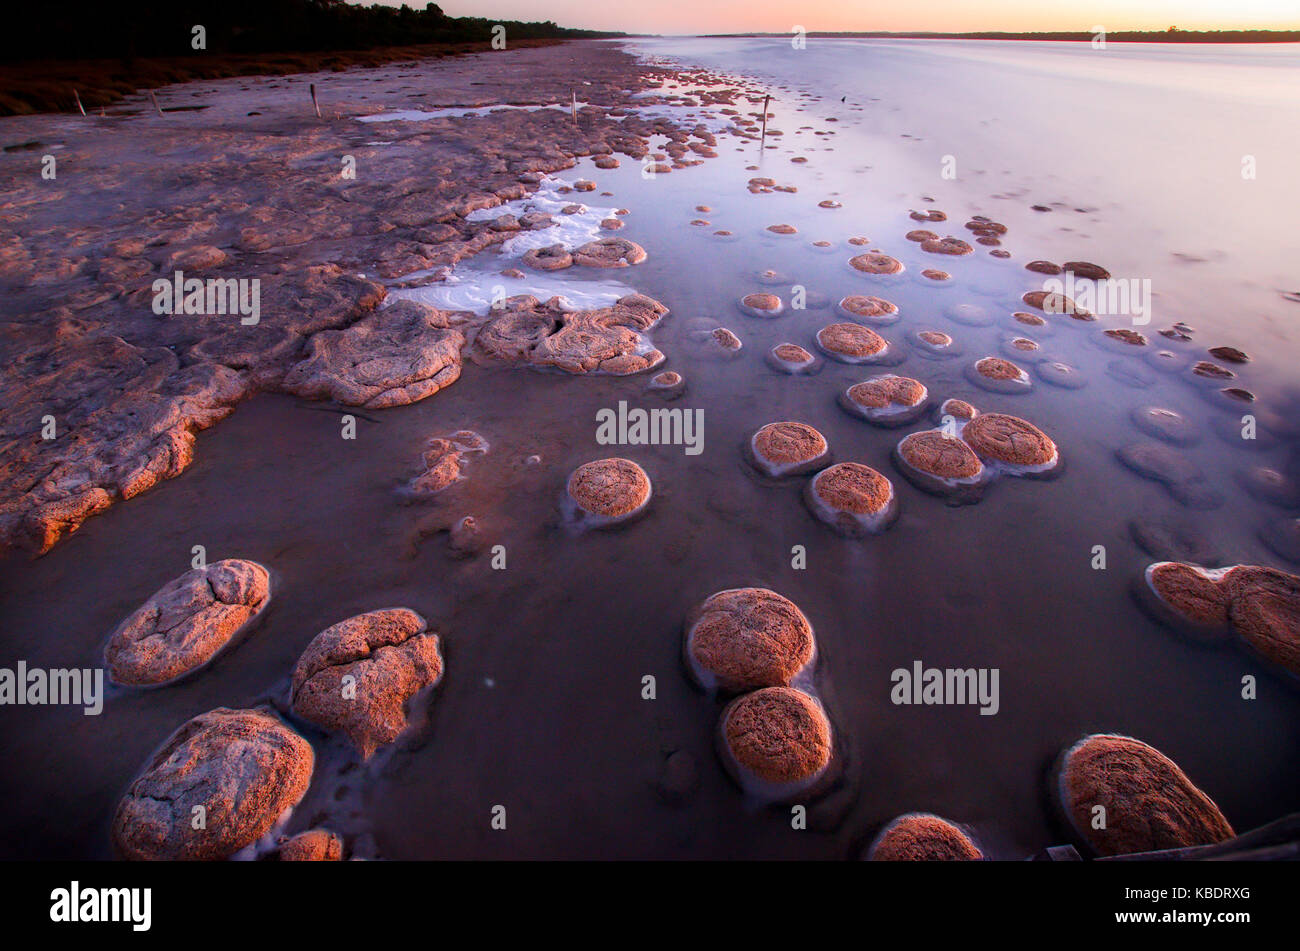 A community of thrombolites, extremely rare and ancient life forms, living fossils built by micro-organisms and - Stock Image